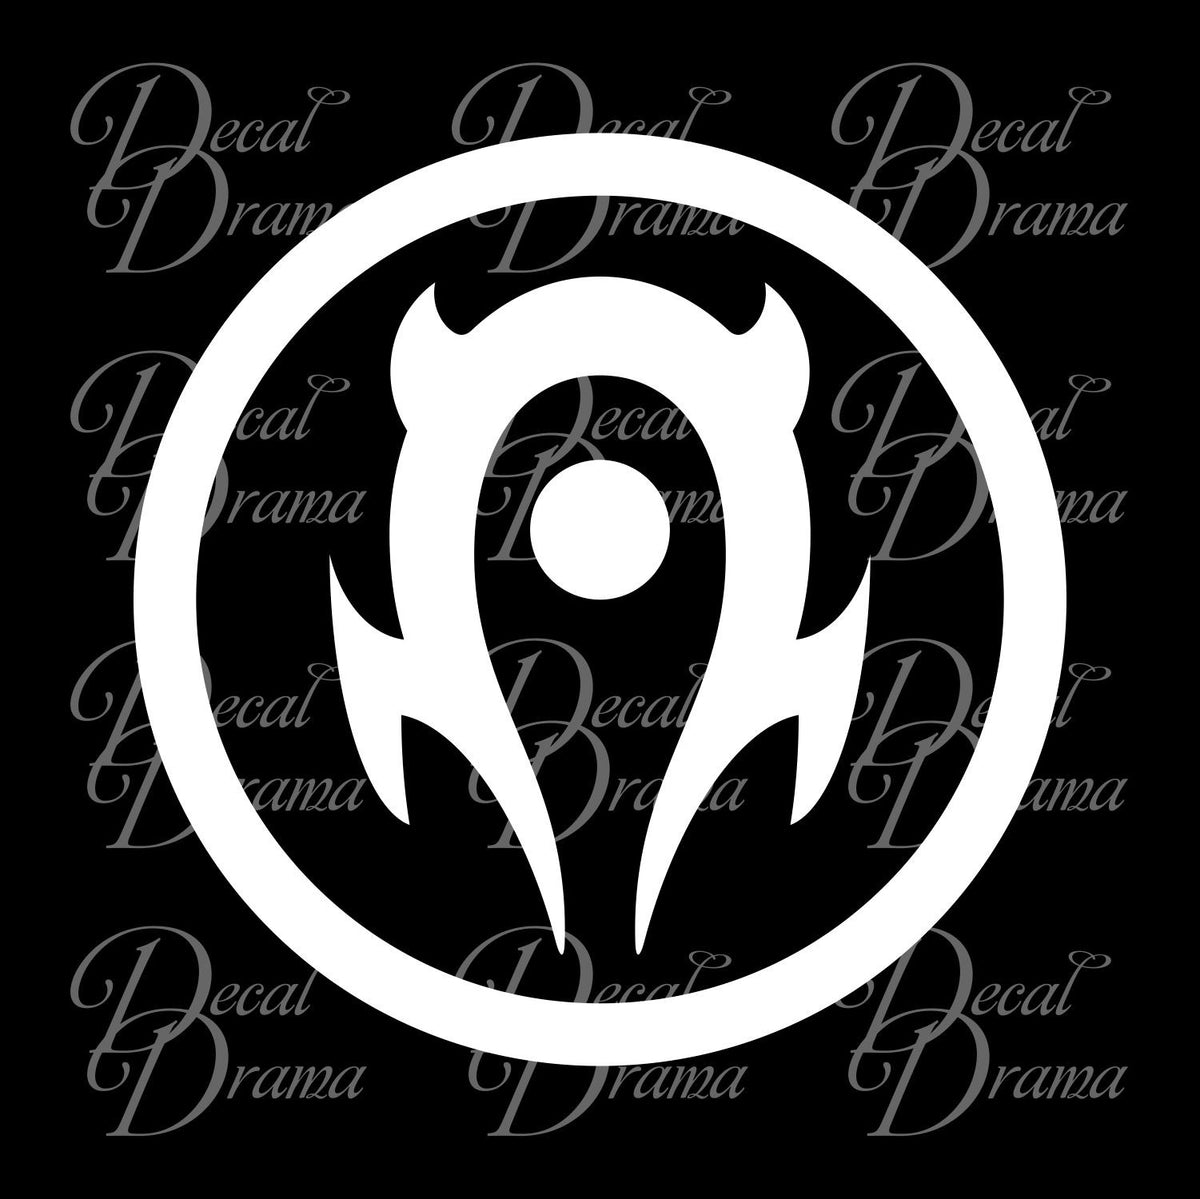 Horde Symbol Wow World Of Warcraft Inspired Car Laptop Decal Decal Drama The horde symbol is just the first half, but opened to show that all are welcome and there is no other. the smaller bit under the symbol is supposed to be the simplified version of the big symbol, similar. decal drama